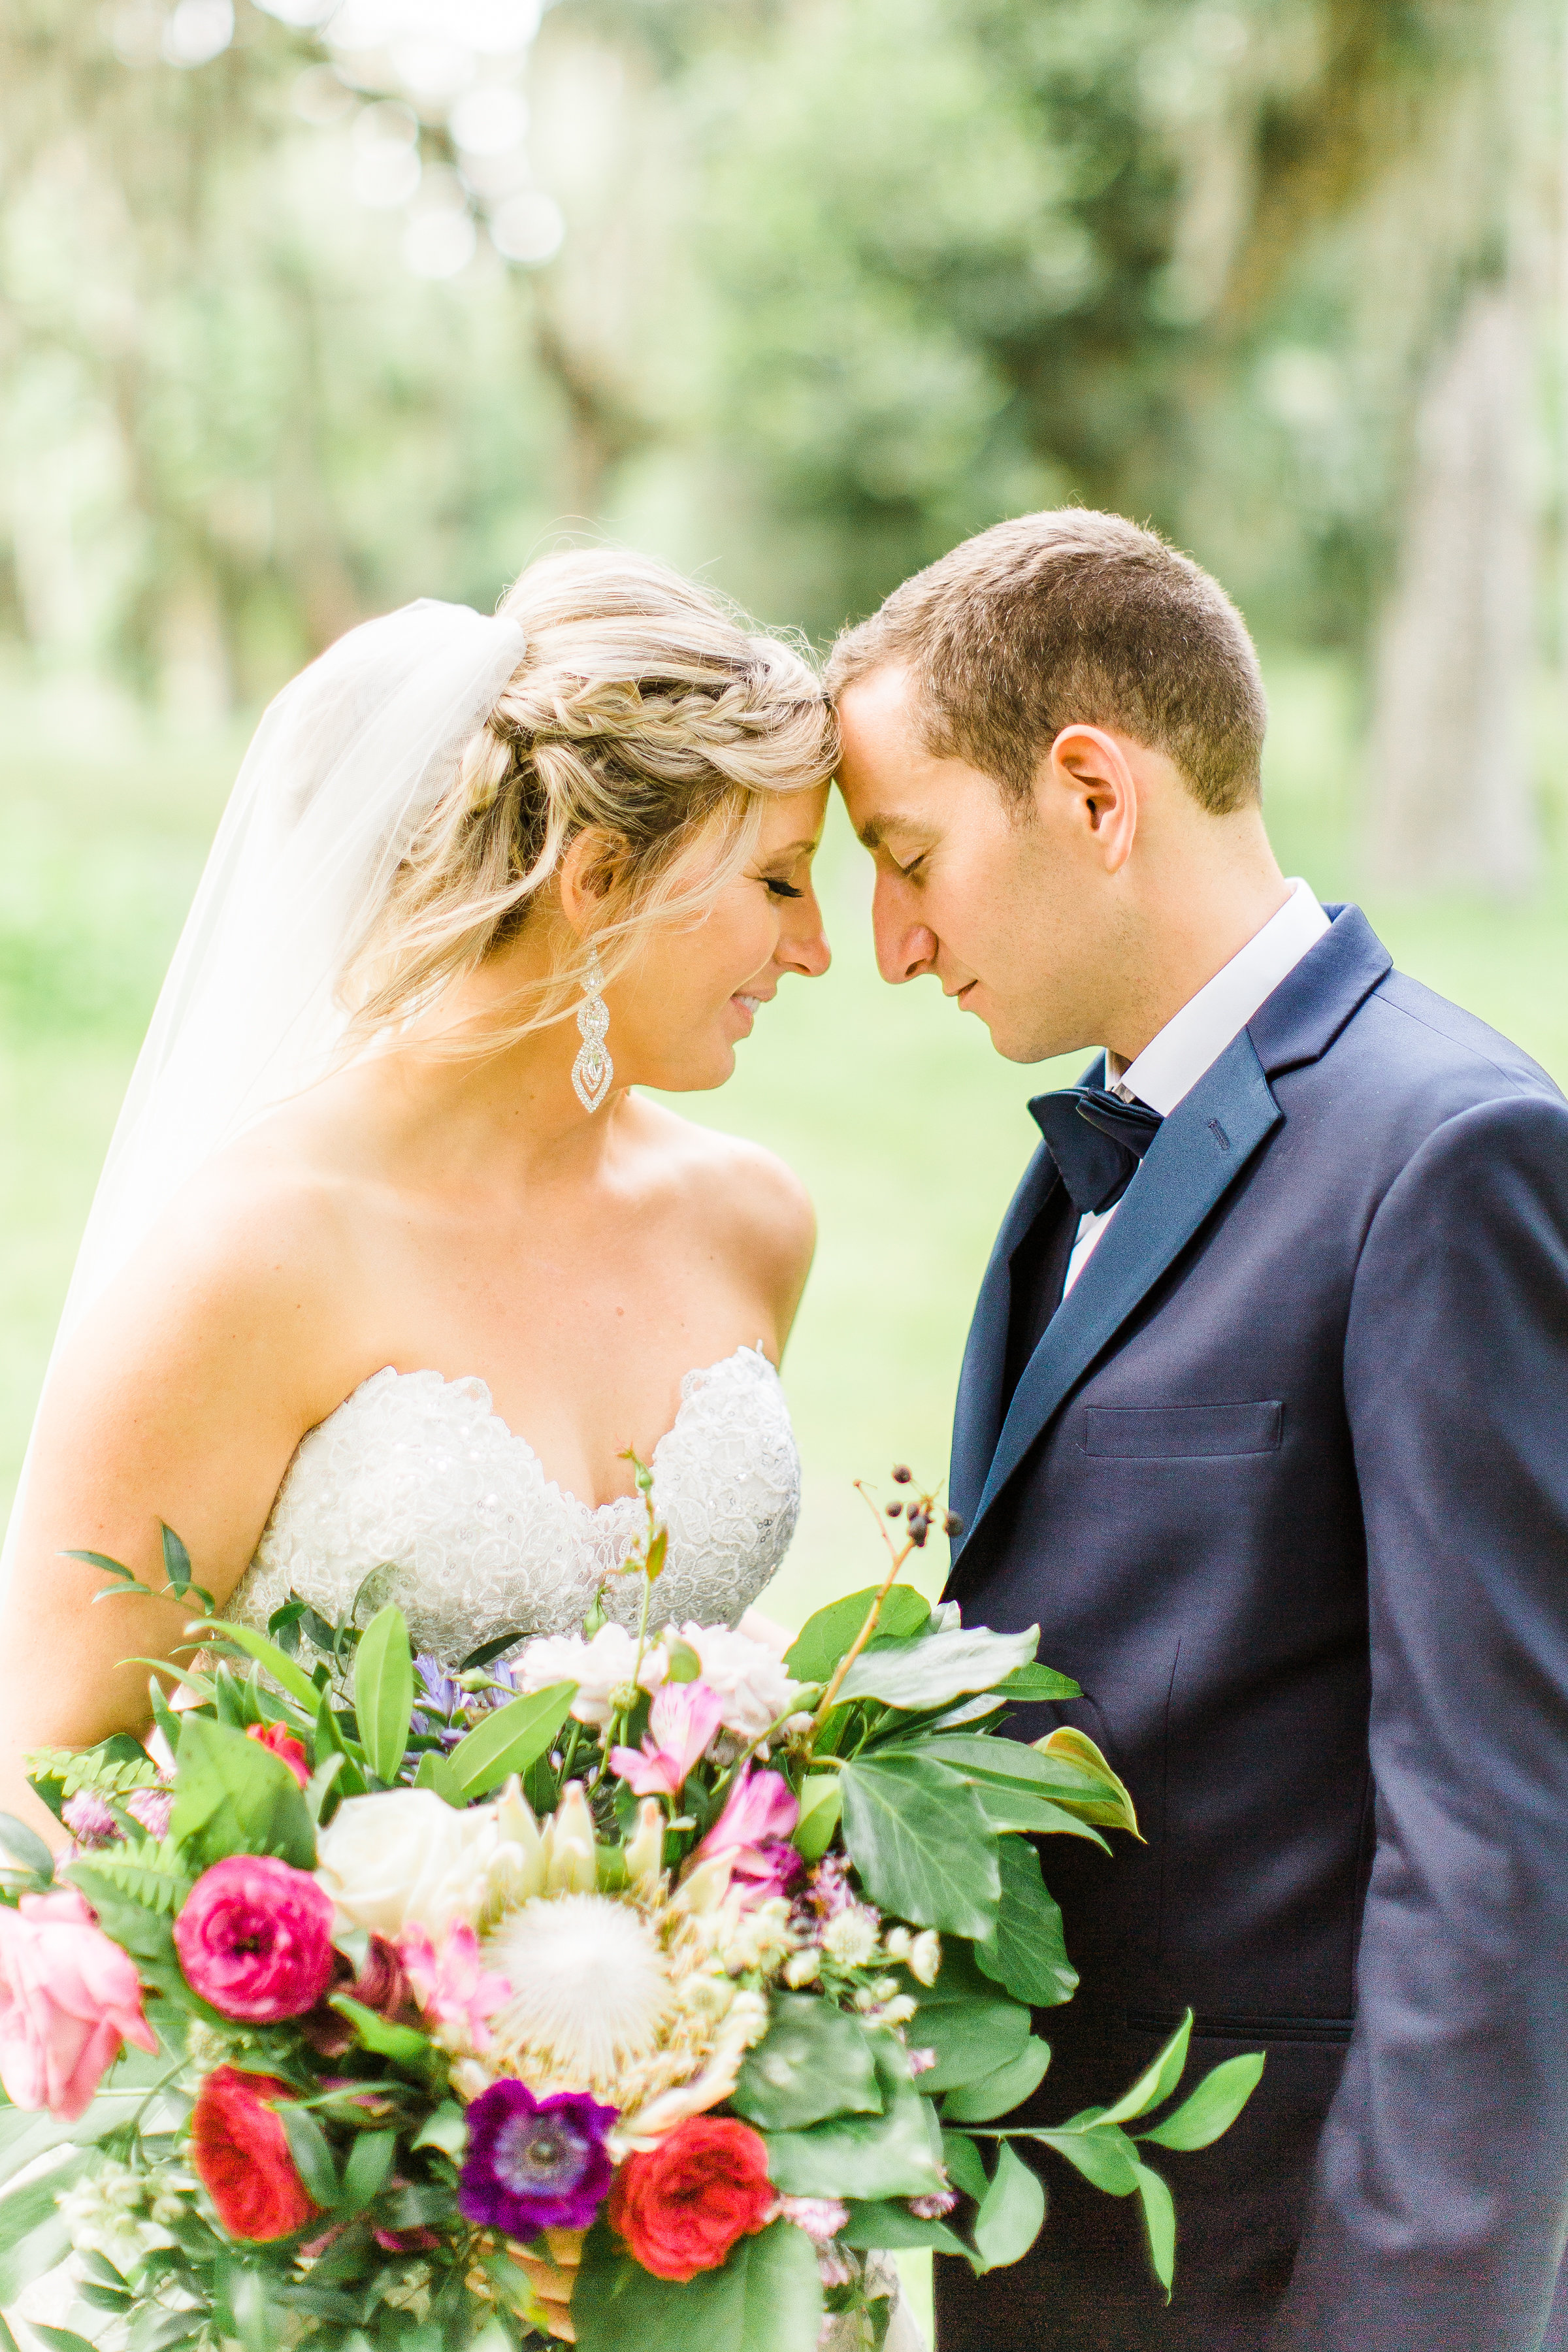 savannah-bridal-shop-i-and-b-couple-gretchen-and-alex-fun-and-unique-tropical-wedding-at-captains-bluff-st-simons-island-wedding-marianne-lucille-photography-11.jpg